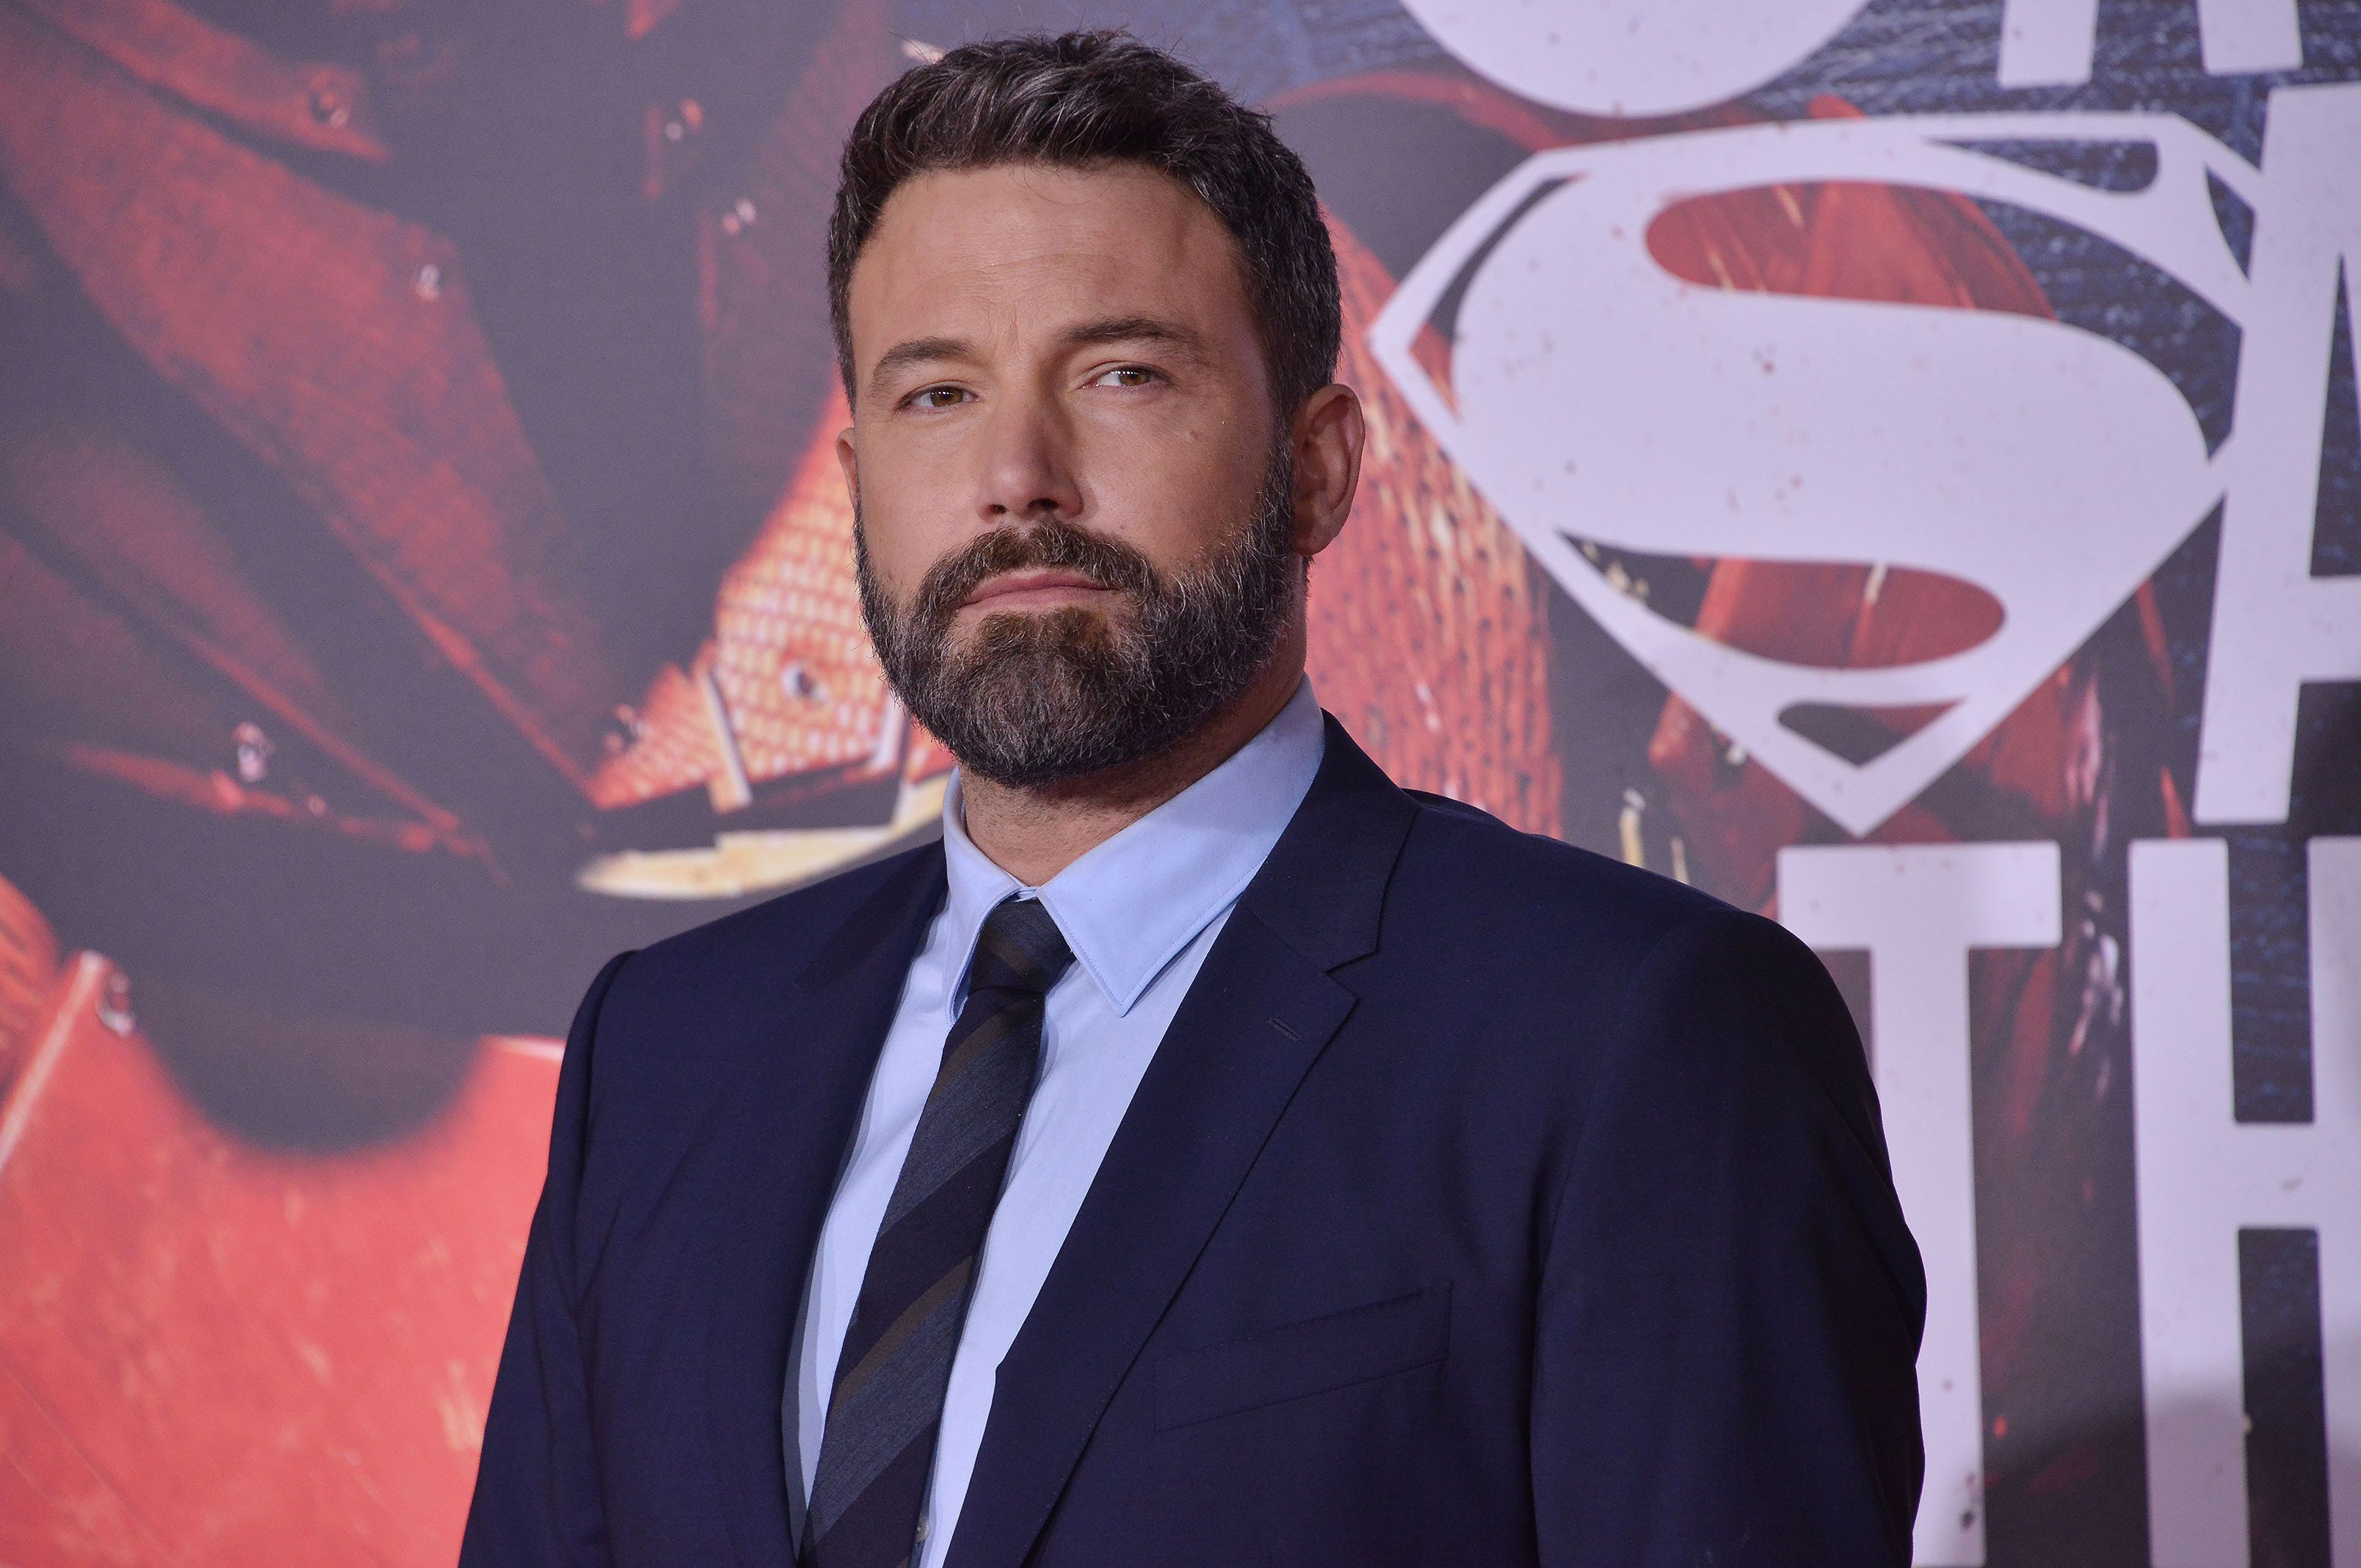 """Ben Affleck arrives at the """"Justice League"""" Los Angeles premiere in 2017."""